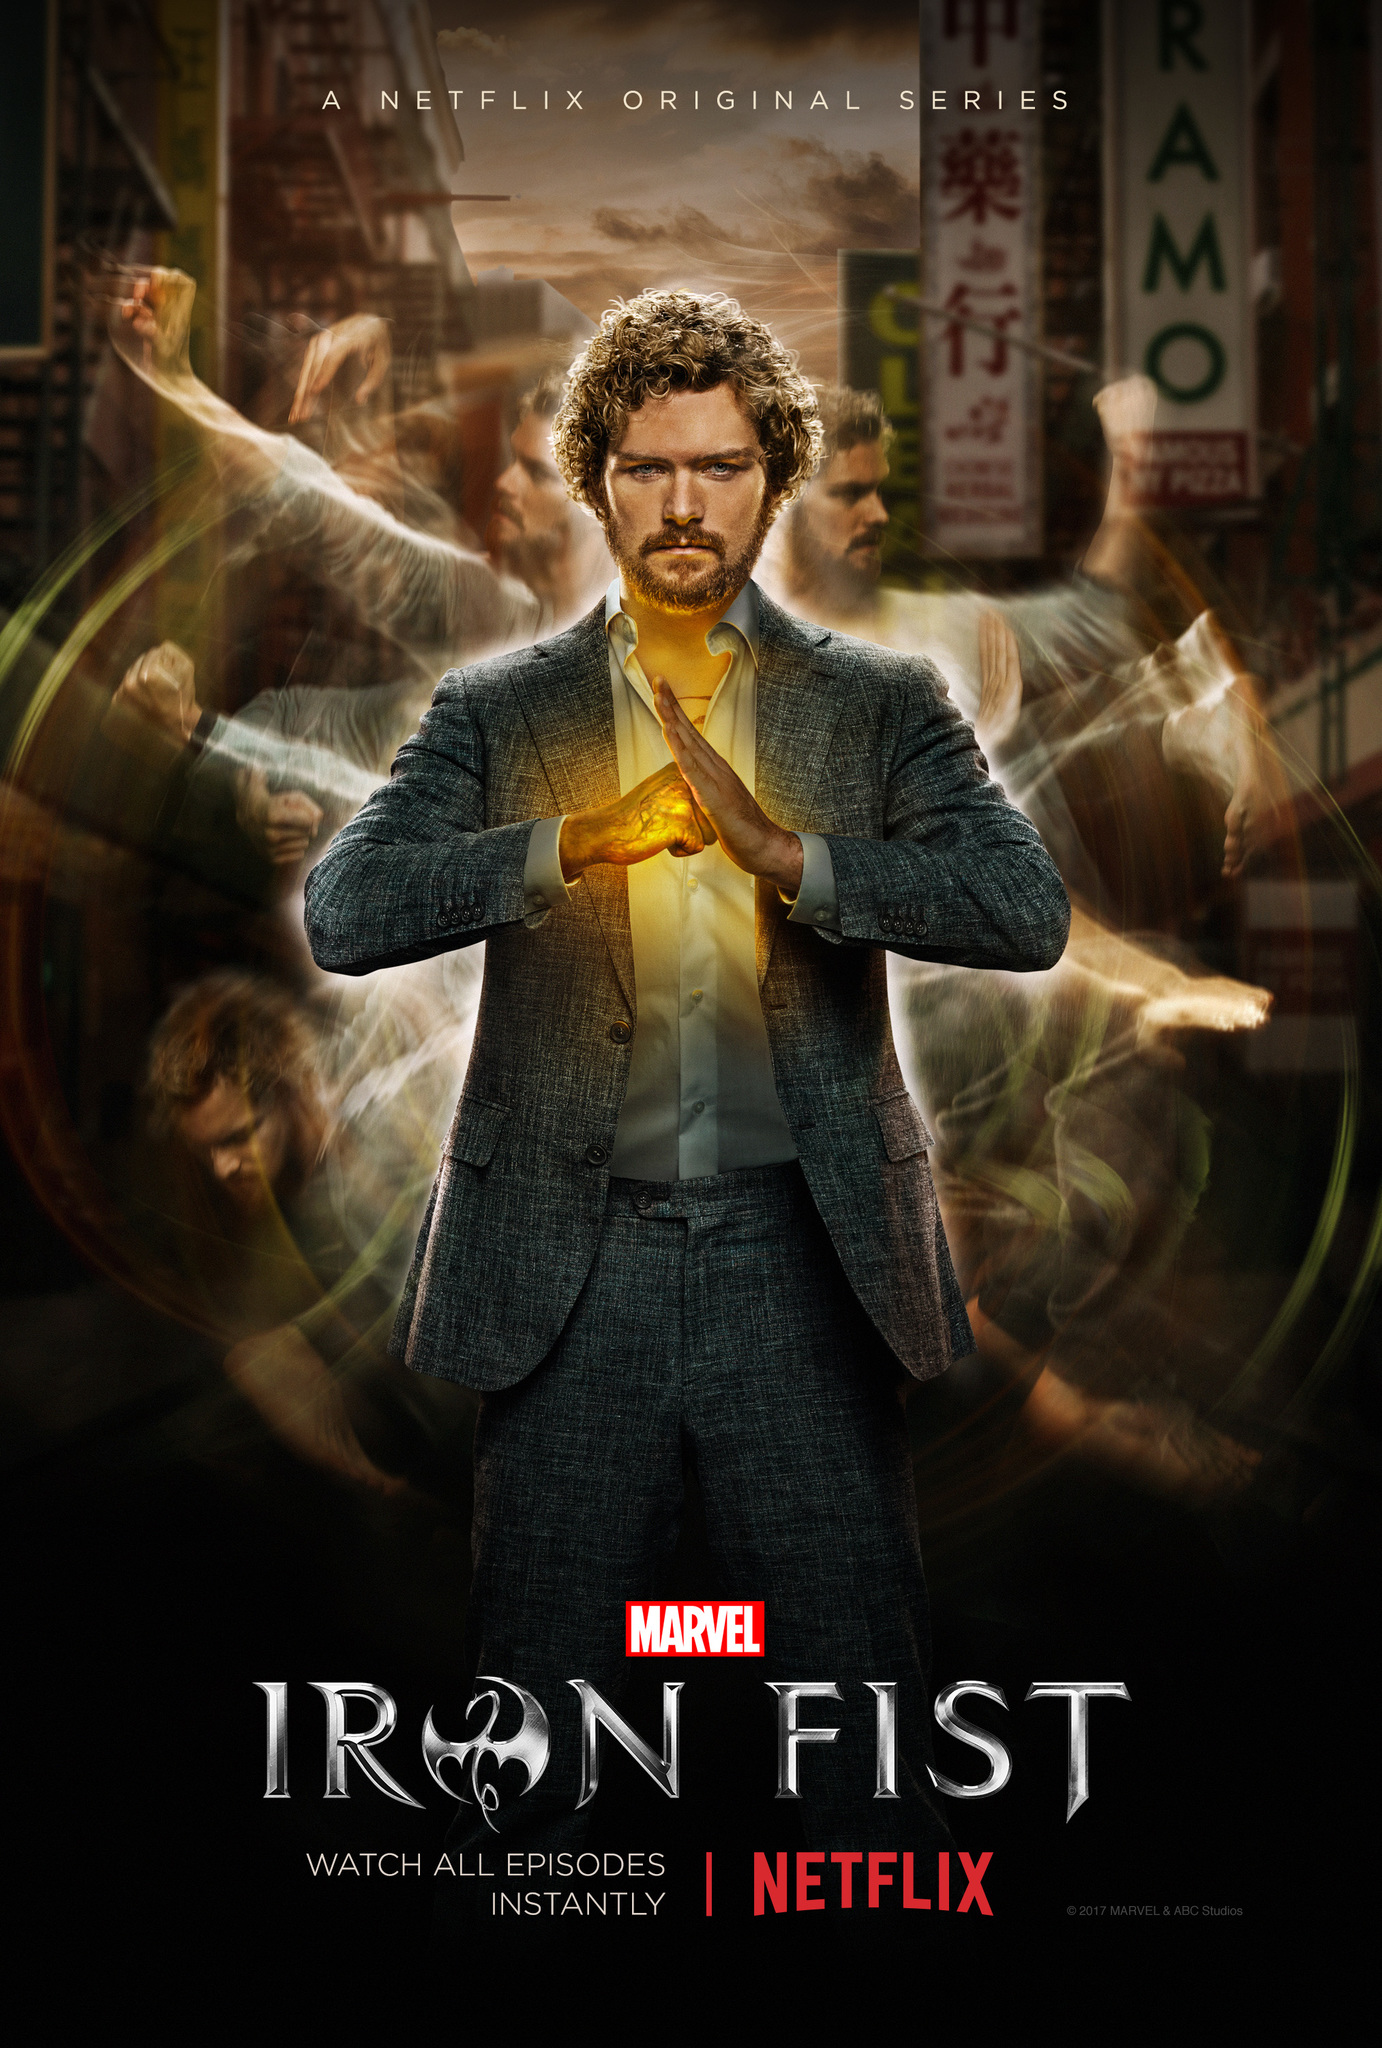 Iron Fist (TV Series 2017–2018) - IMDb